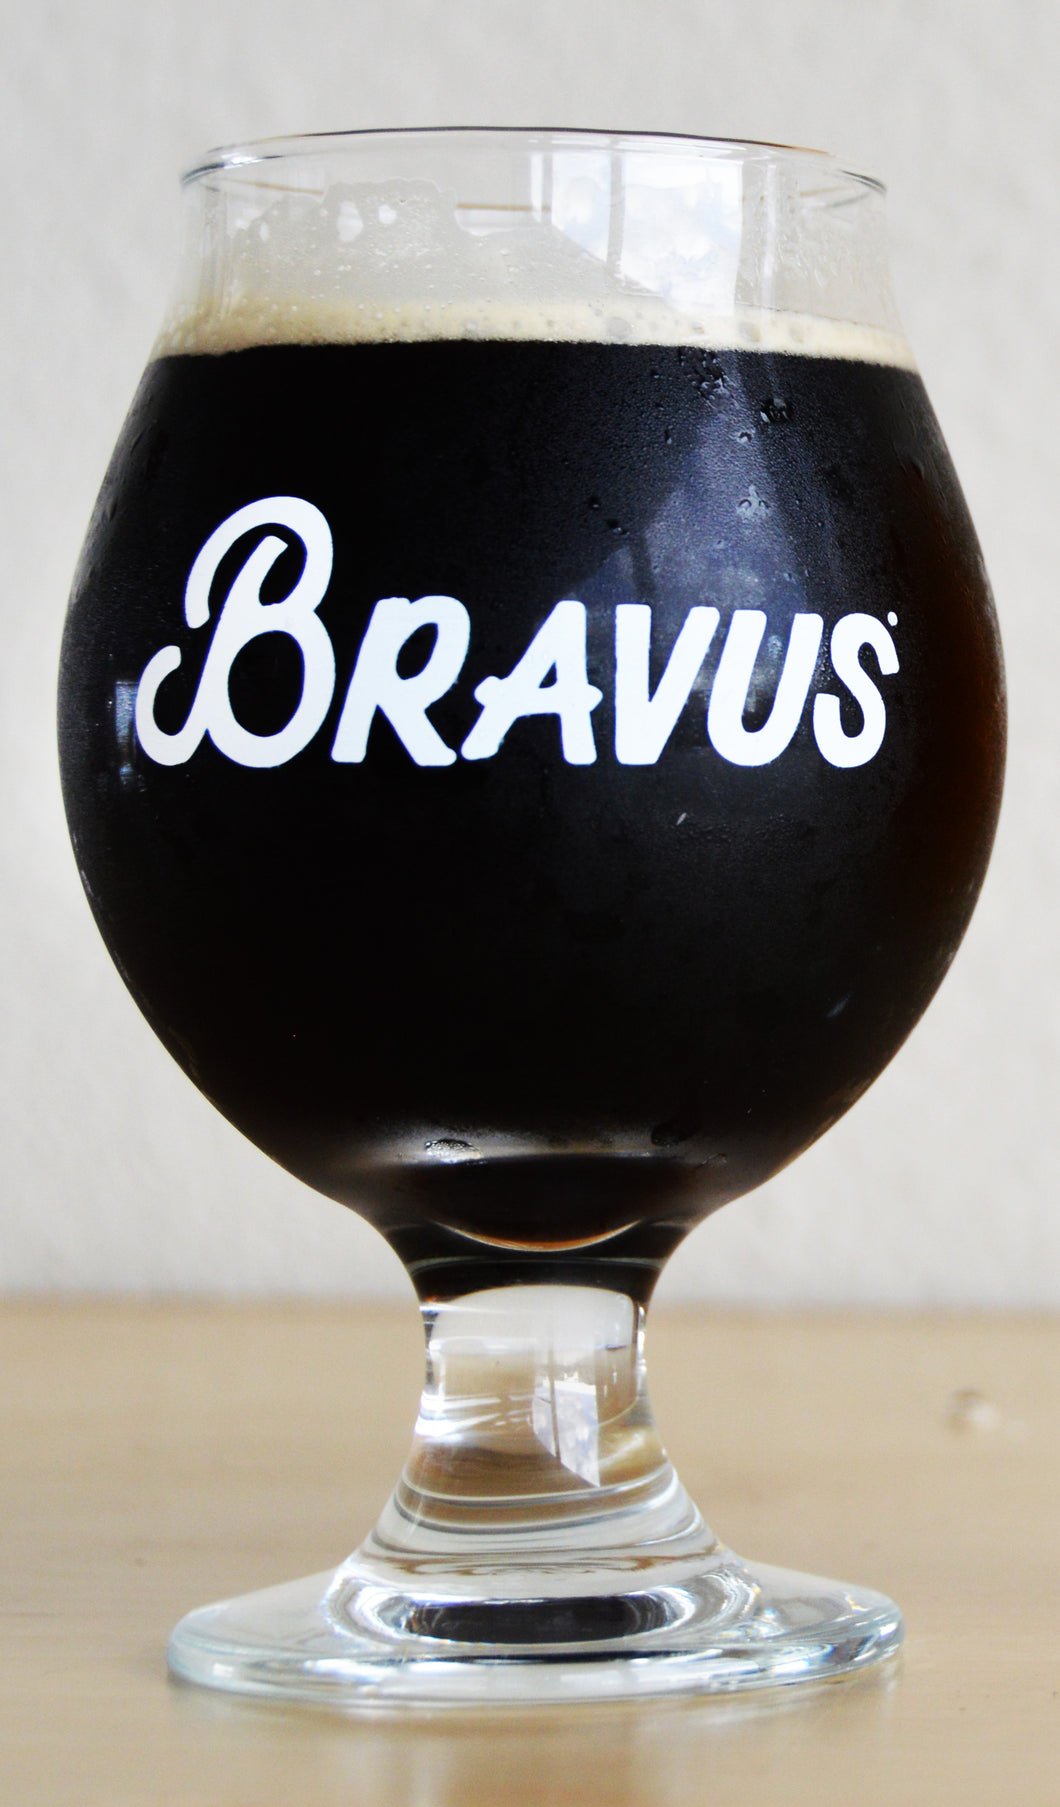 Bravus 13 oz. Belgian Beer Glass - Bravus Brewing Company